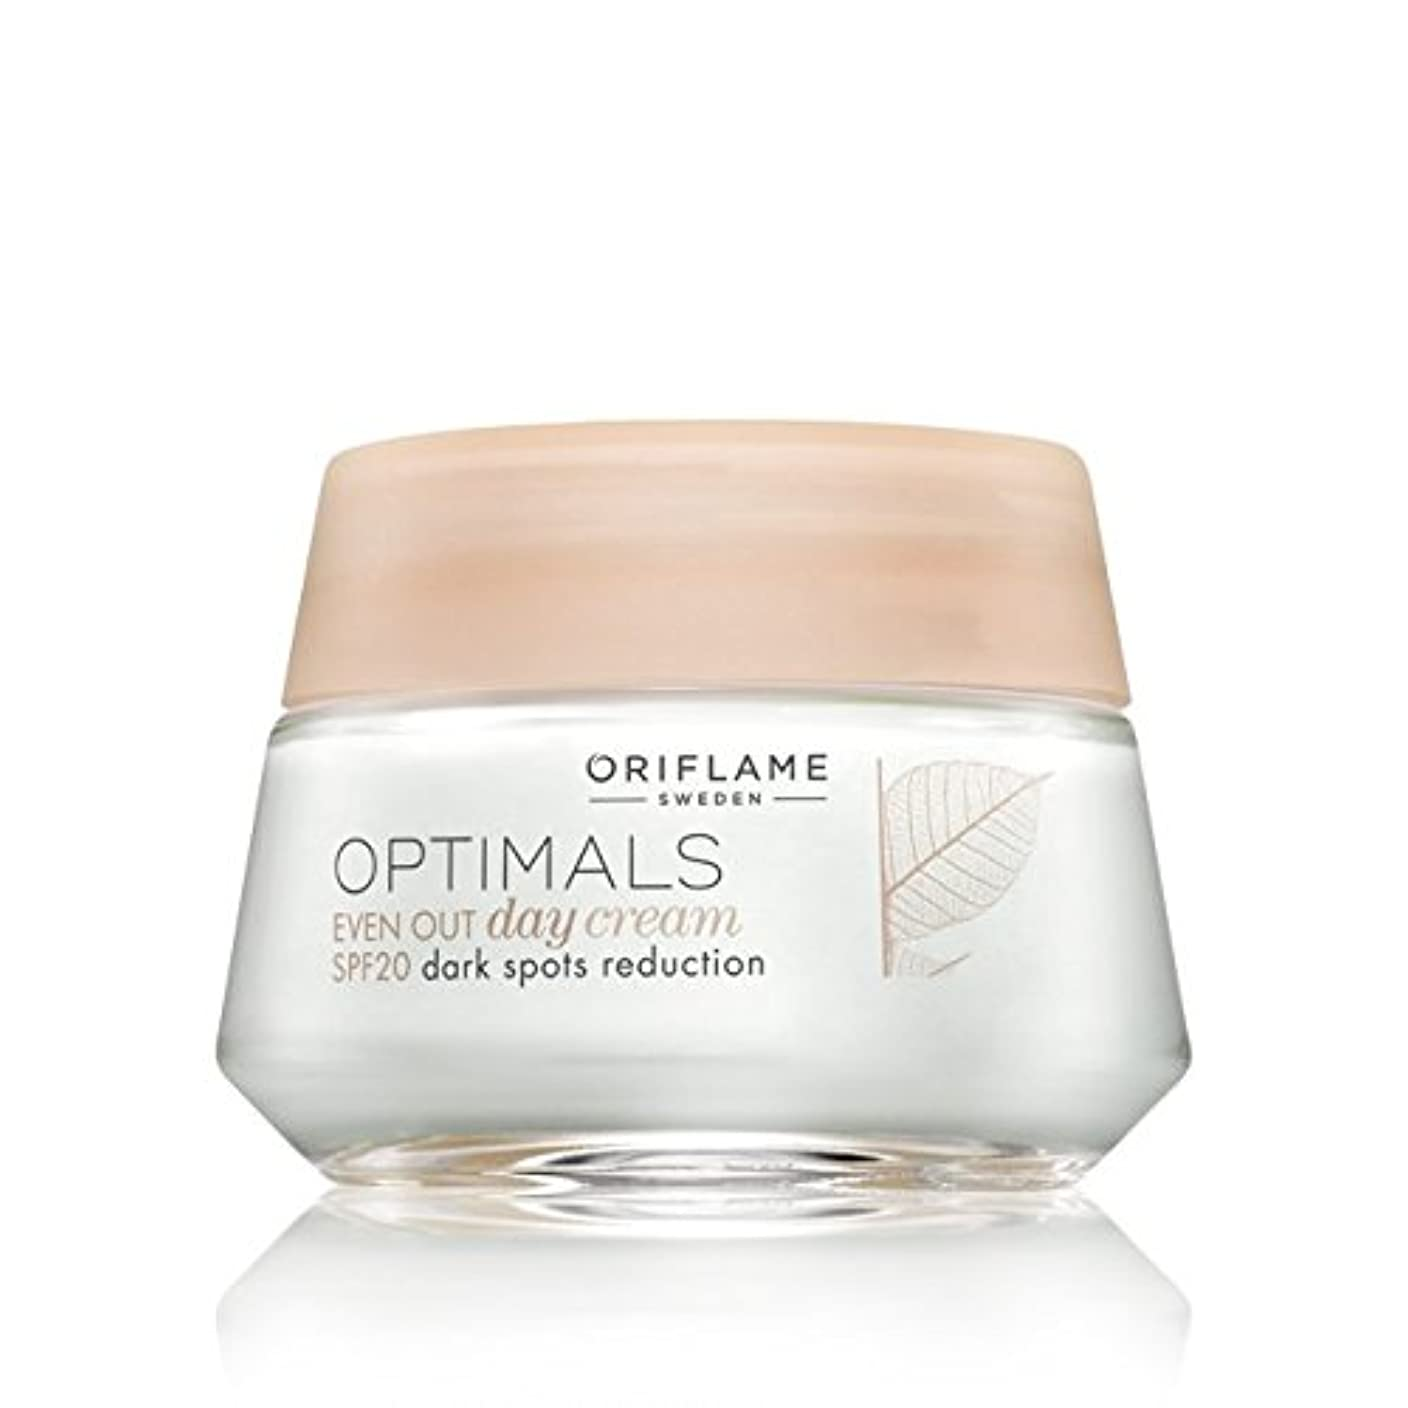 土事滑るOriflame Optimals SPF 20 Dark Spot Reduction Even Out Day Cream, 50ml